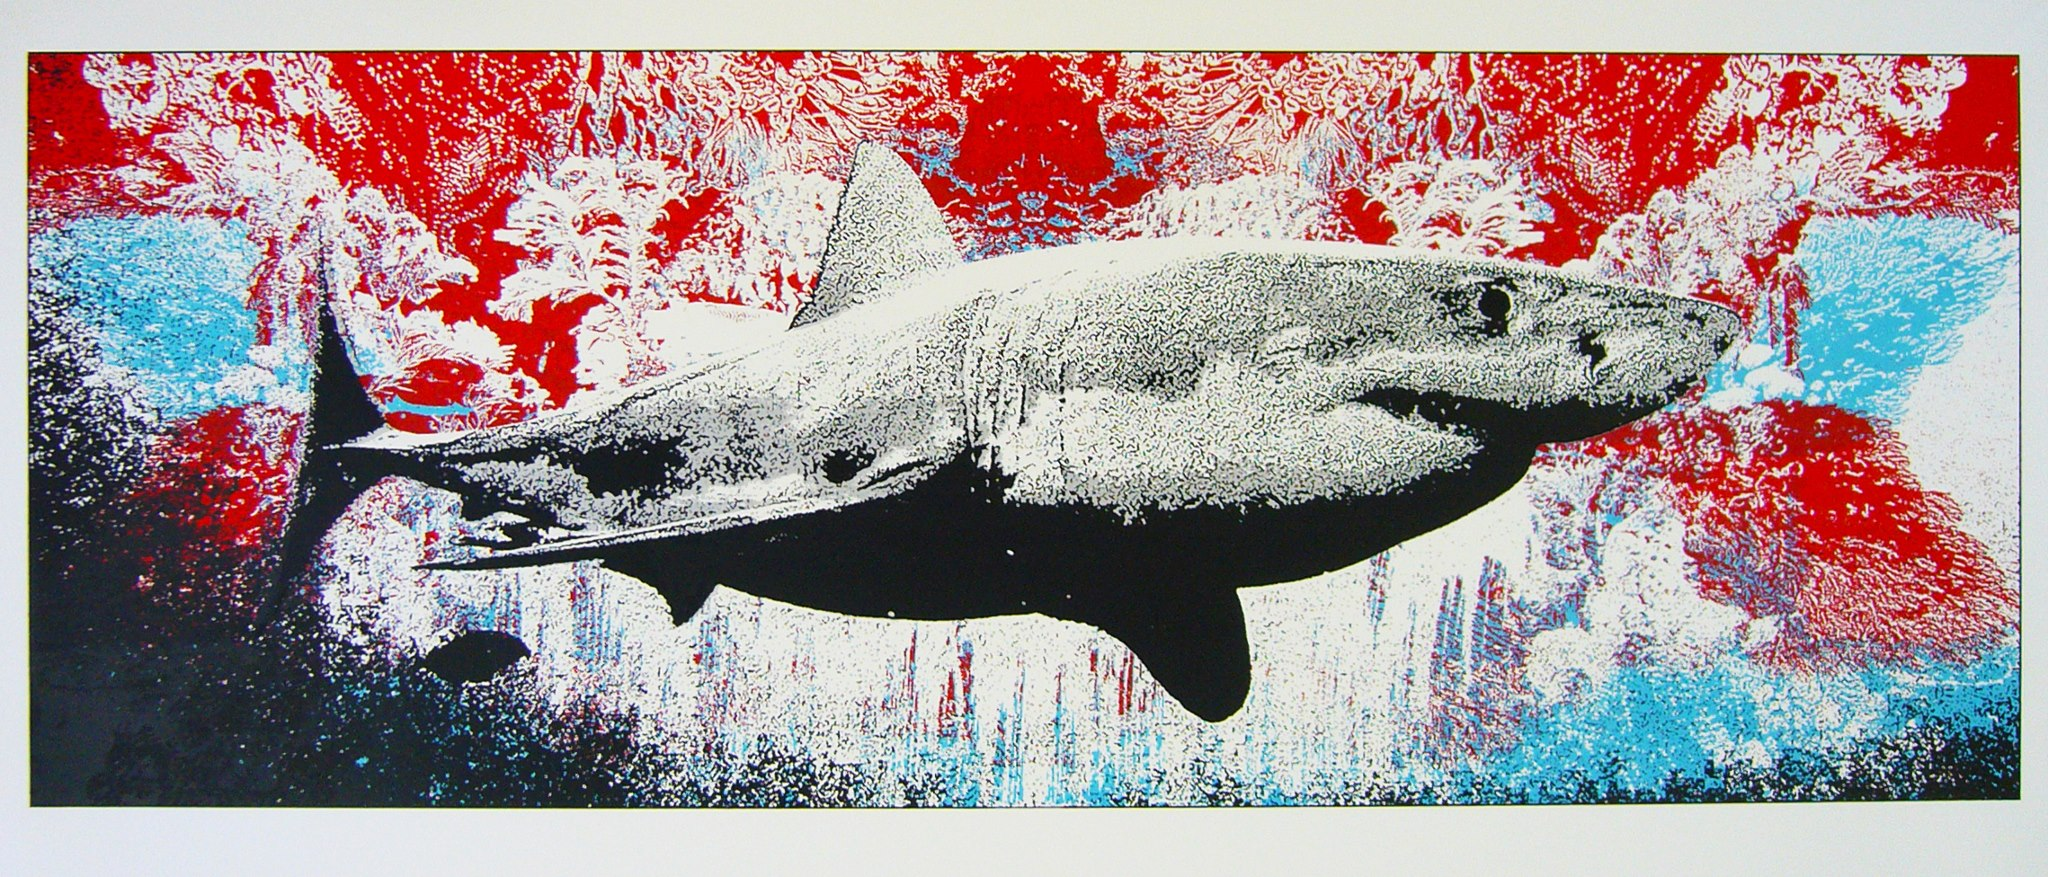 dye untitled shark